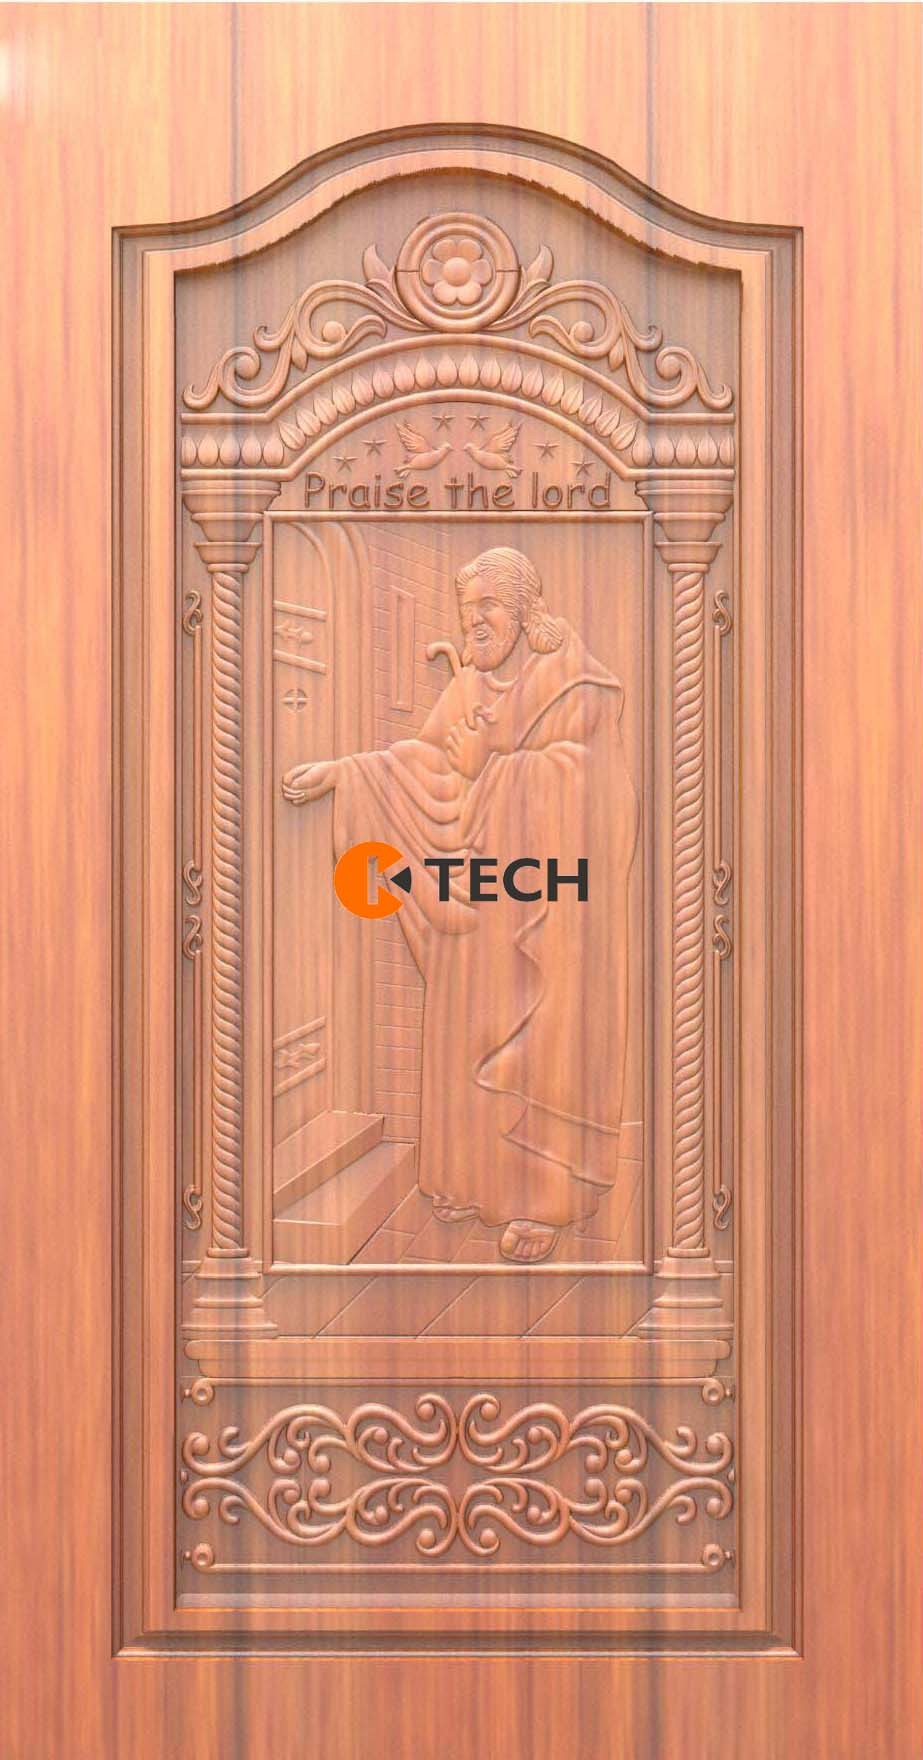 K-TECH CNC Doors Design 92